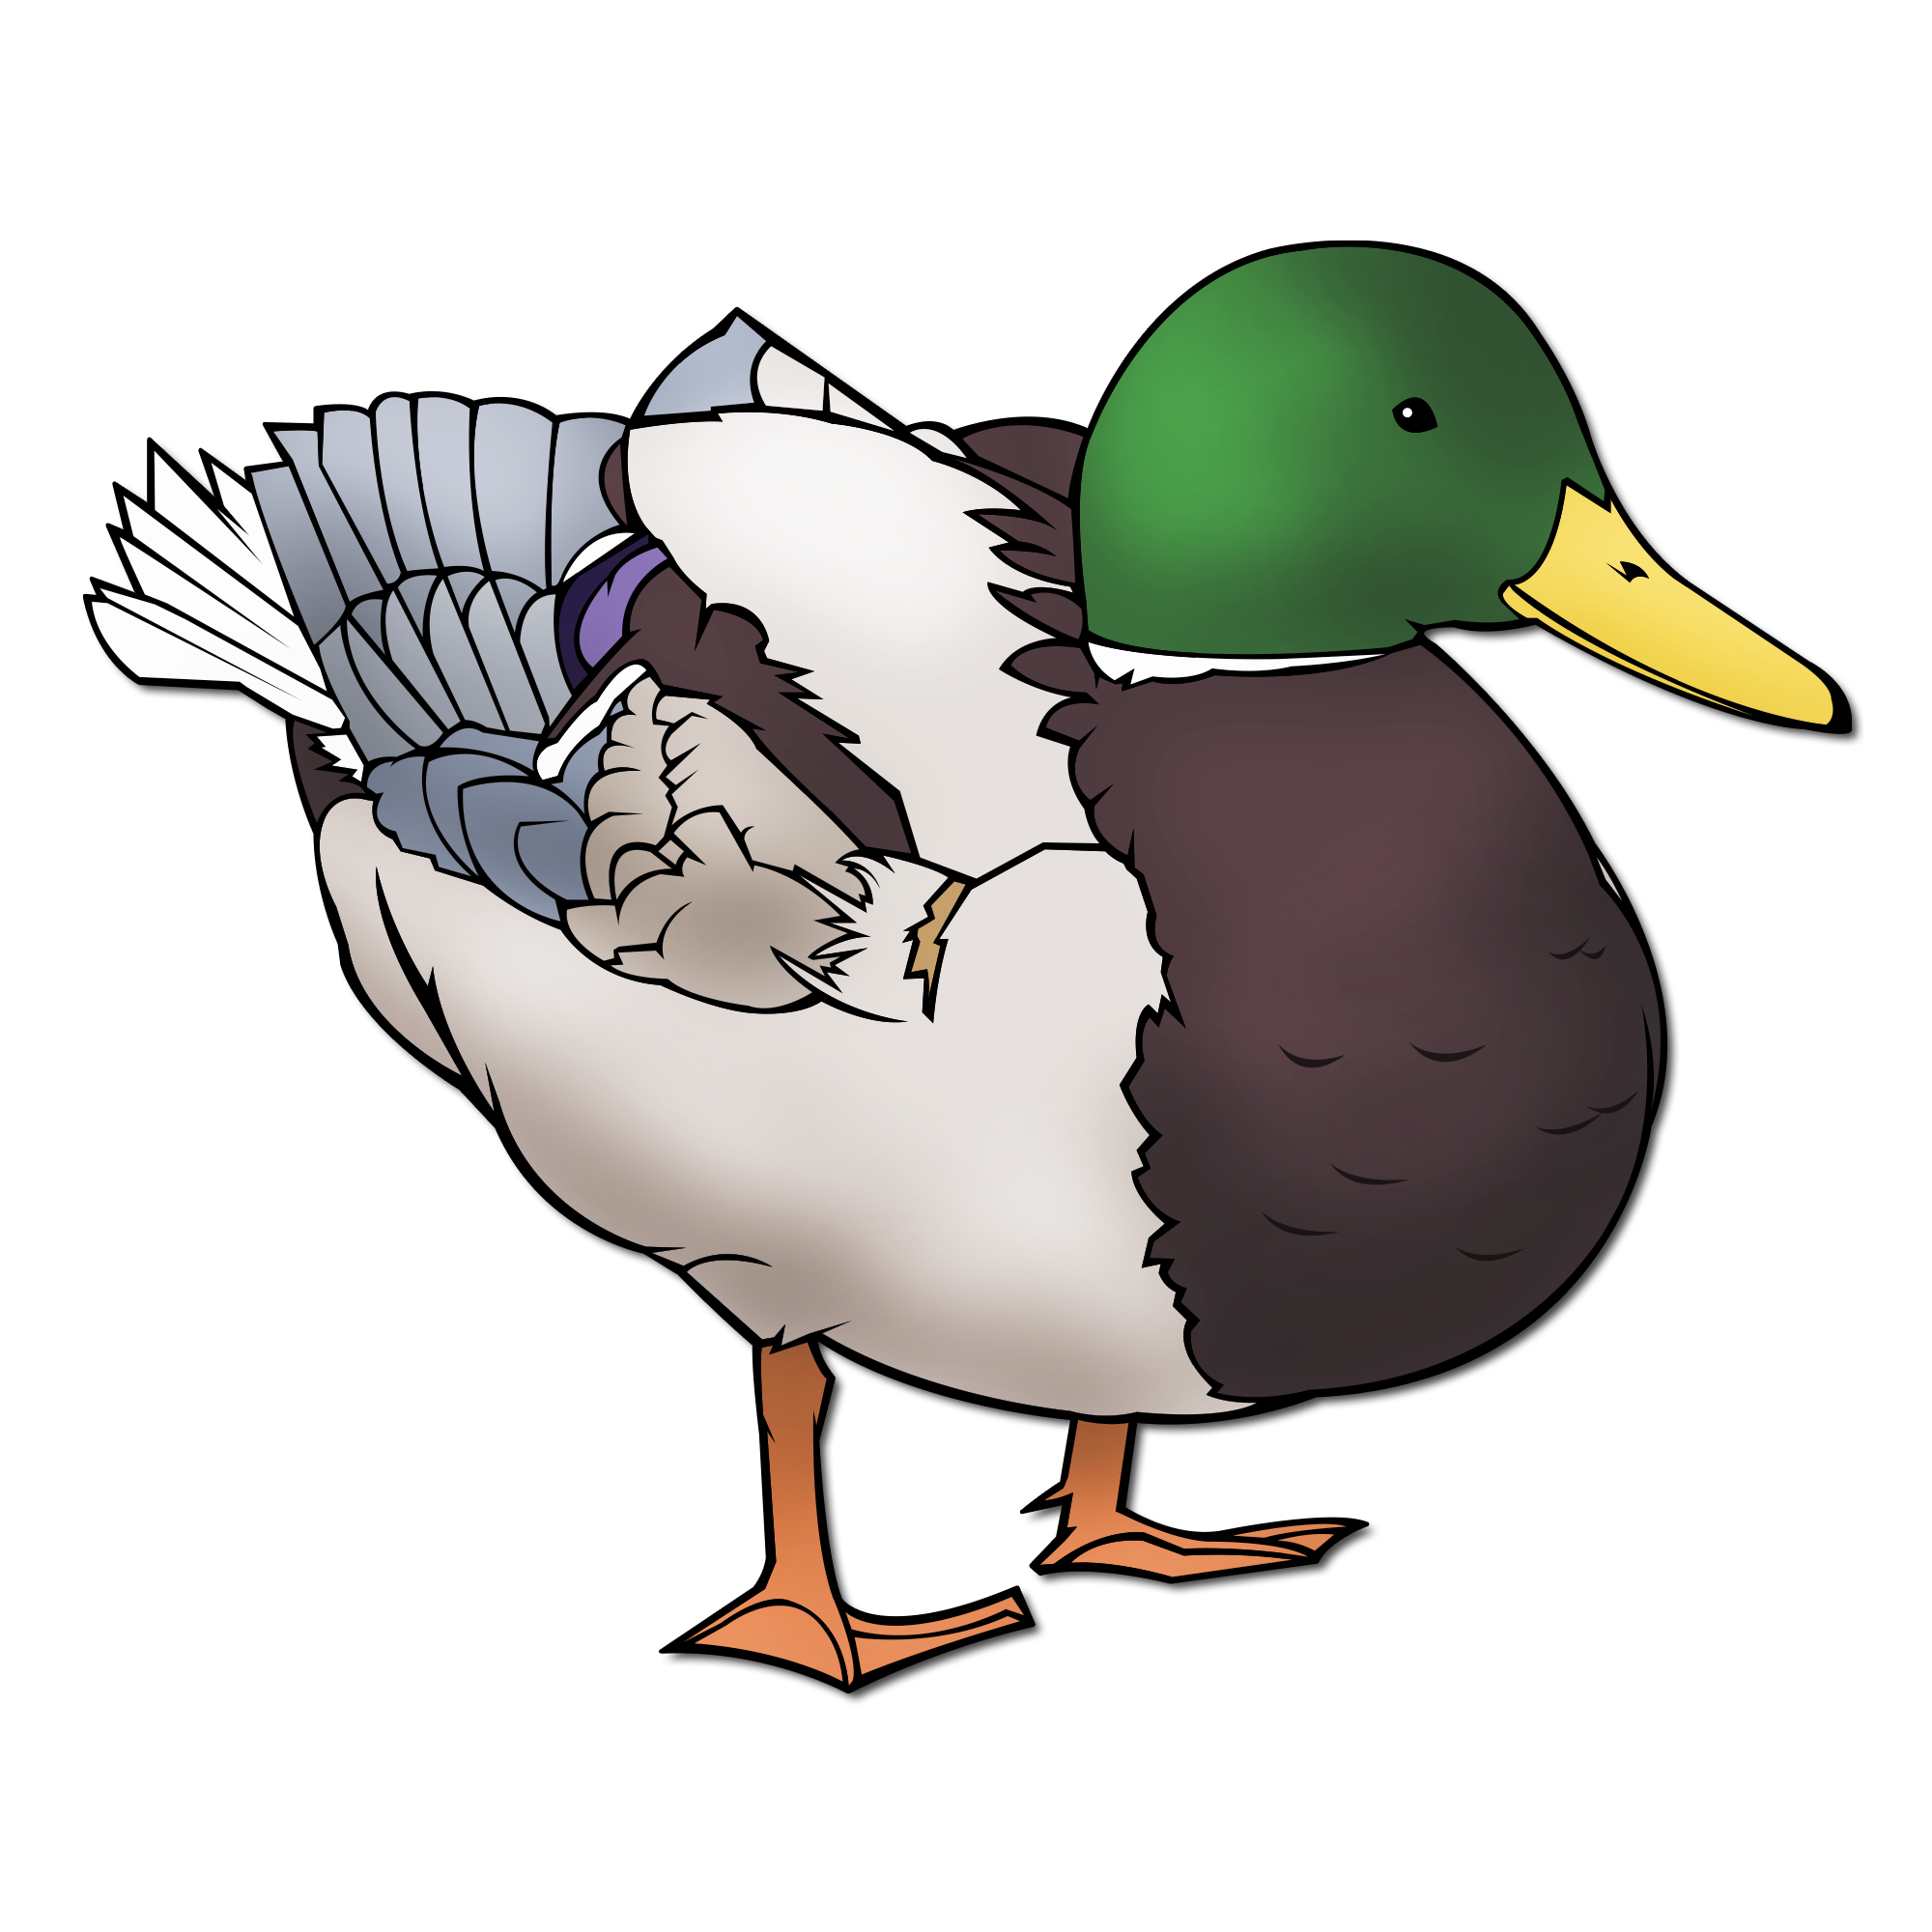 Picturae database detail download. Clipart duck realistic